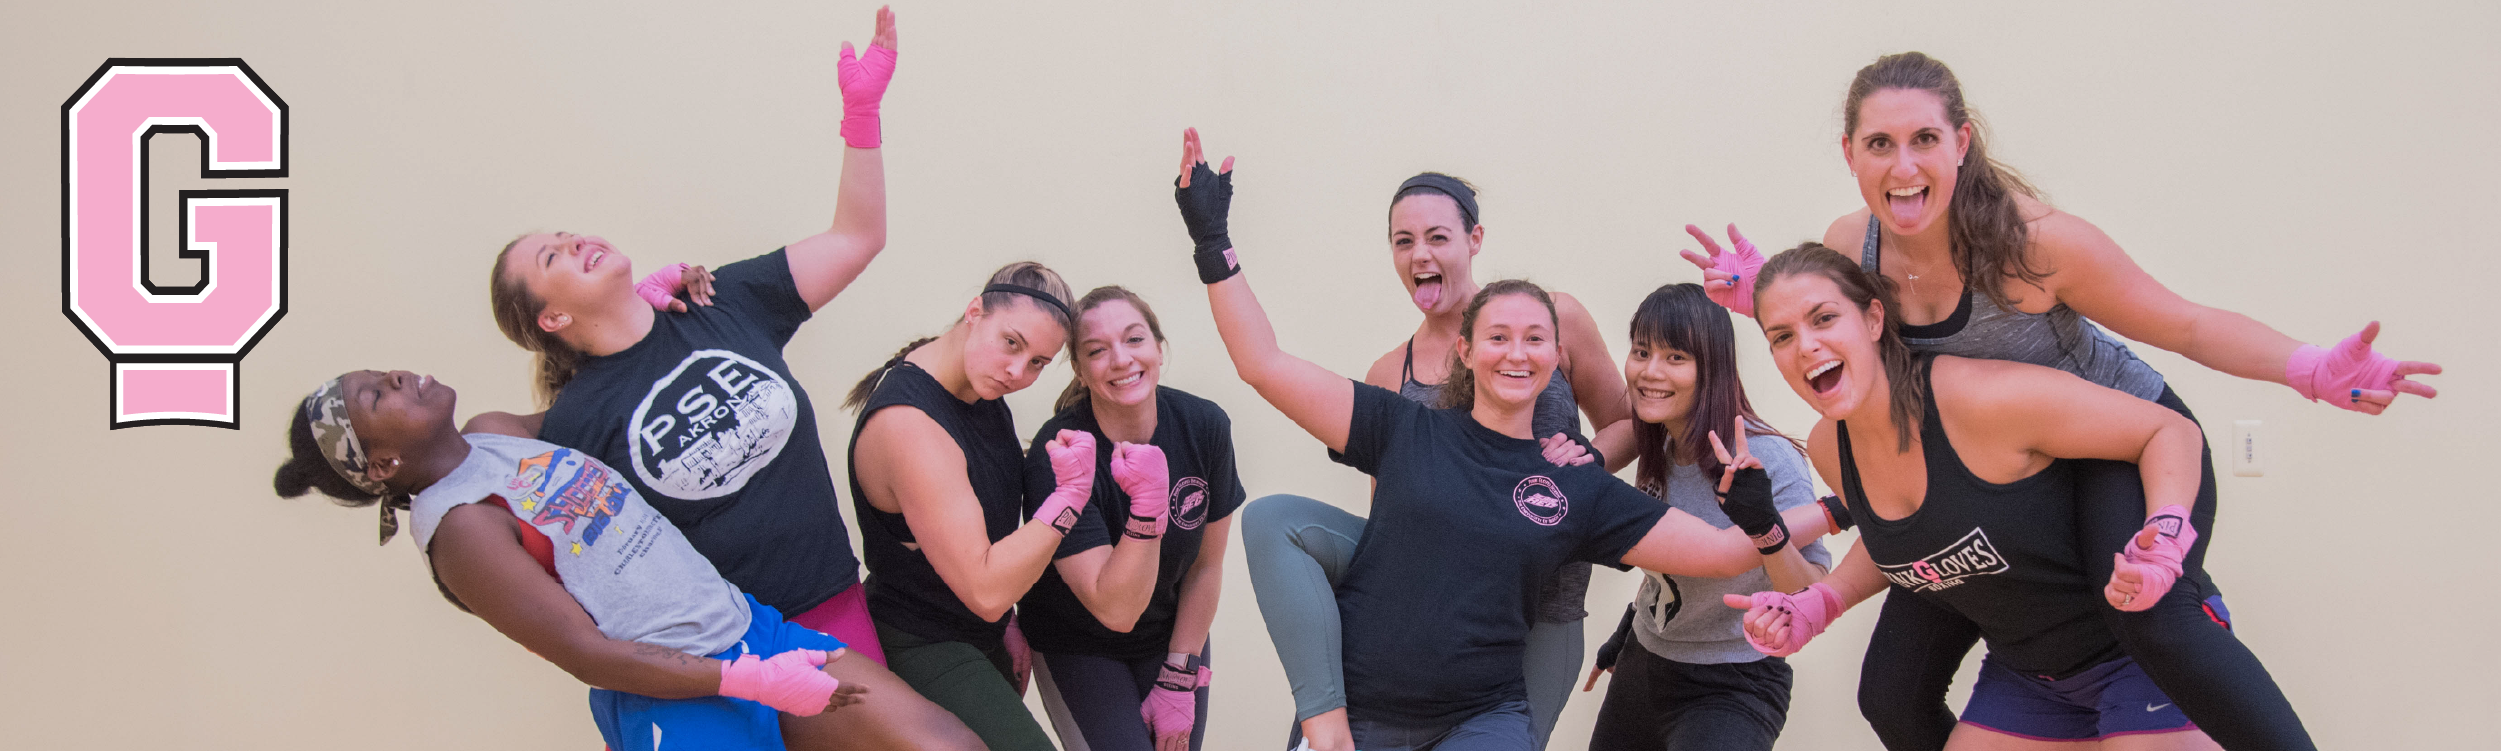 Women of Pink Gloves Boxing